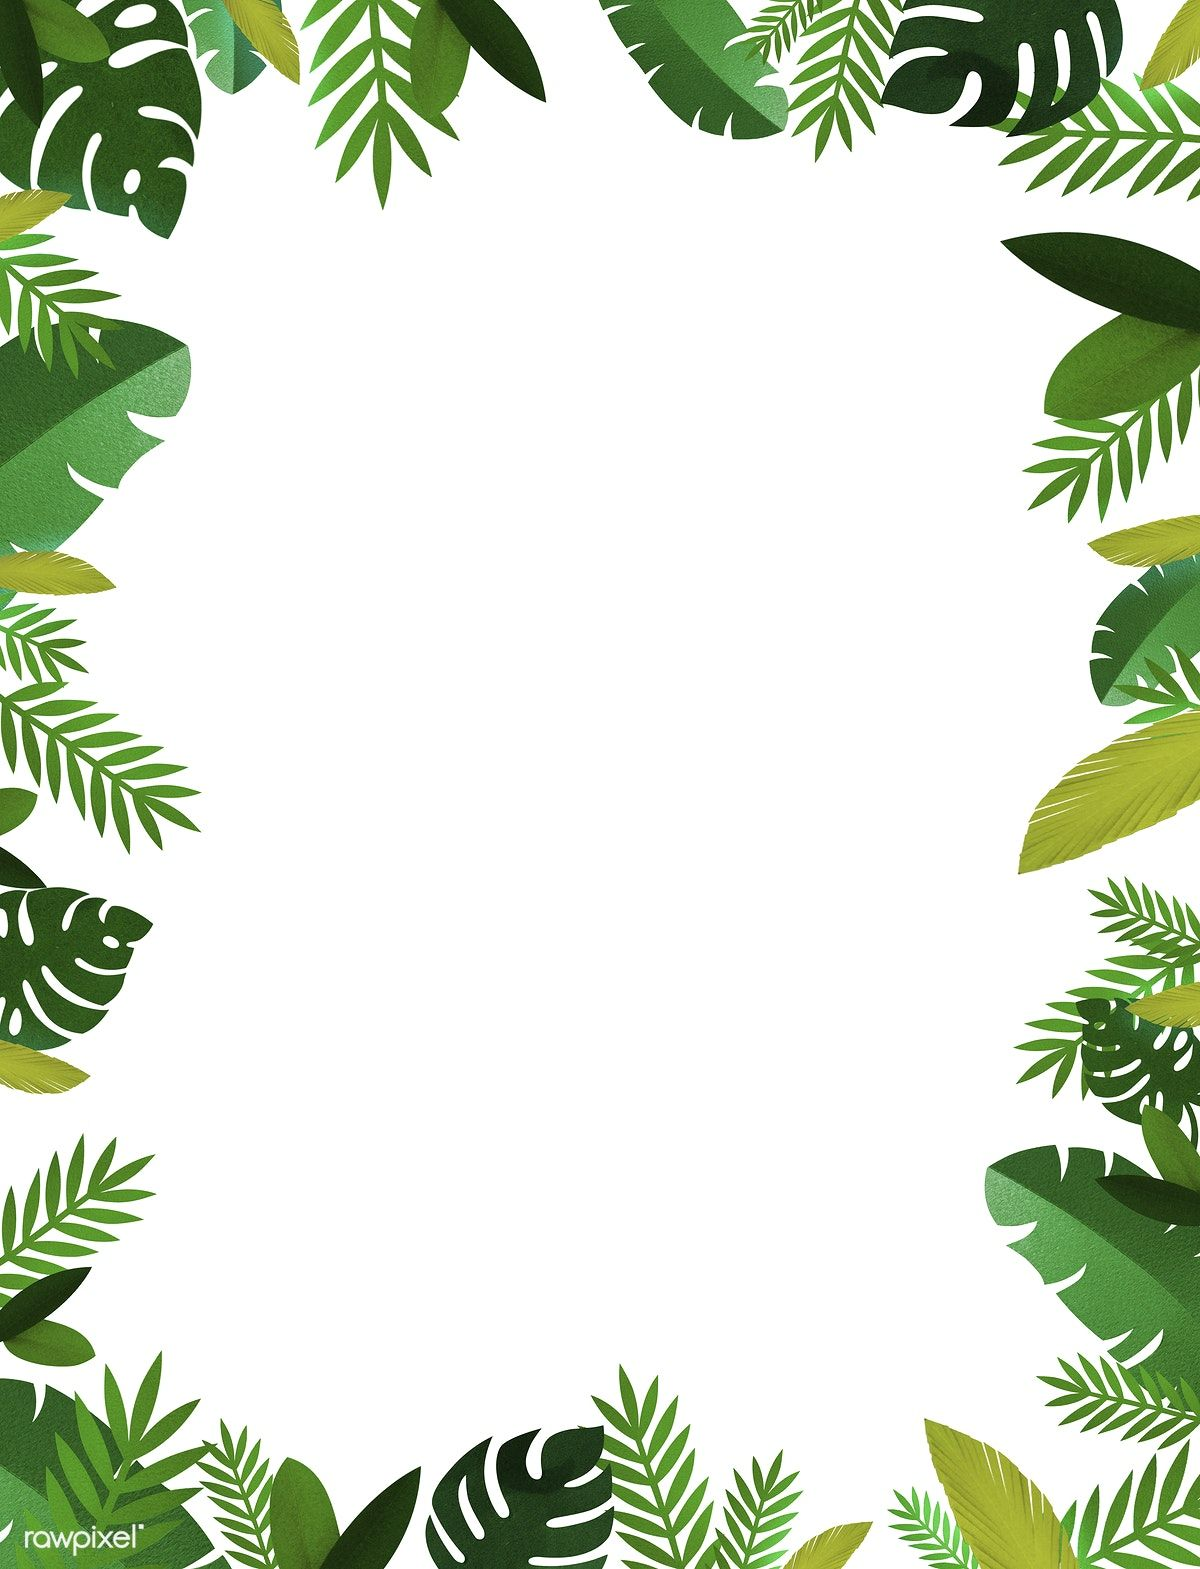 Download premium illustration of Tropical Handcrafted